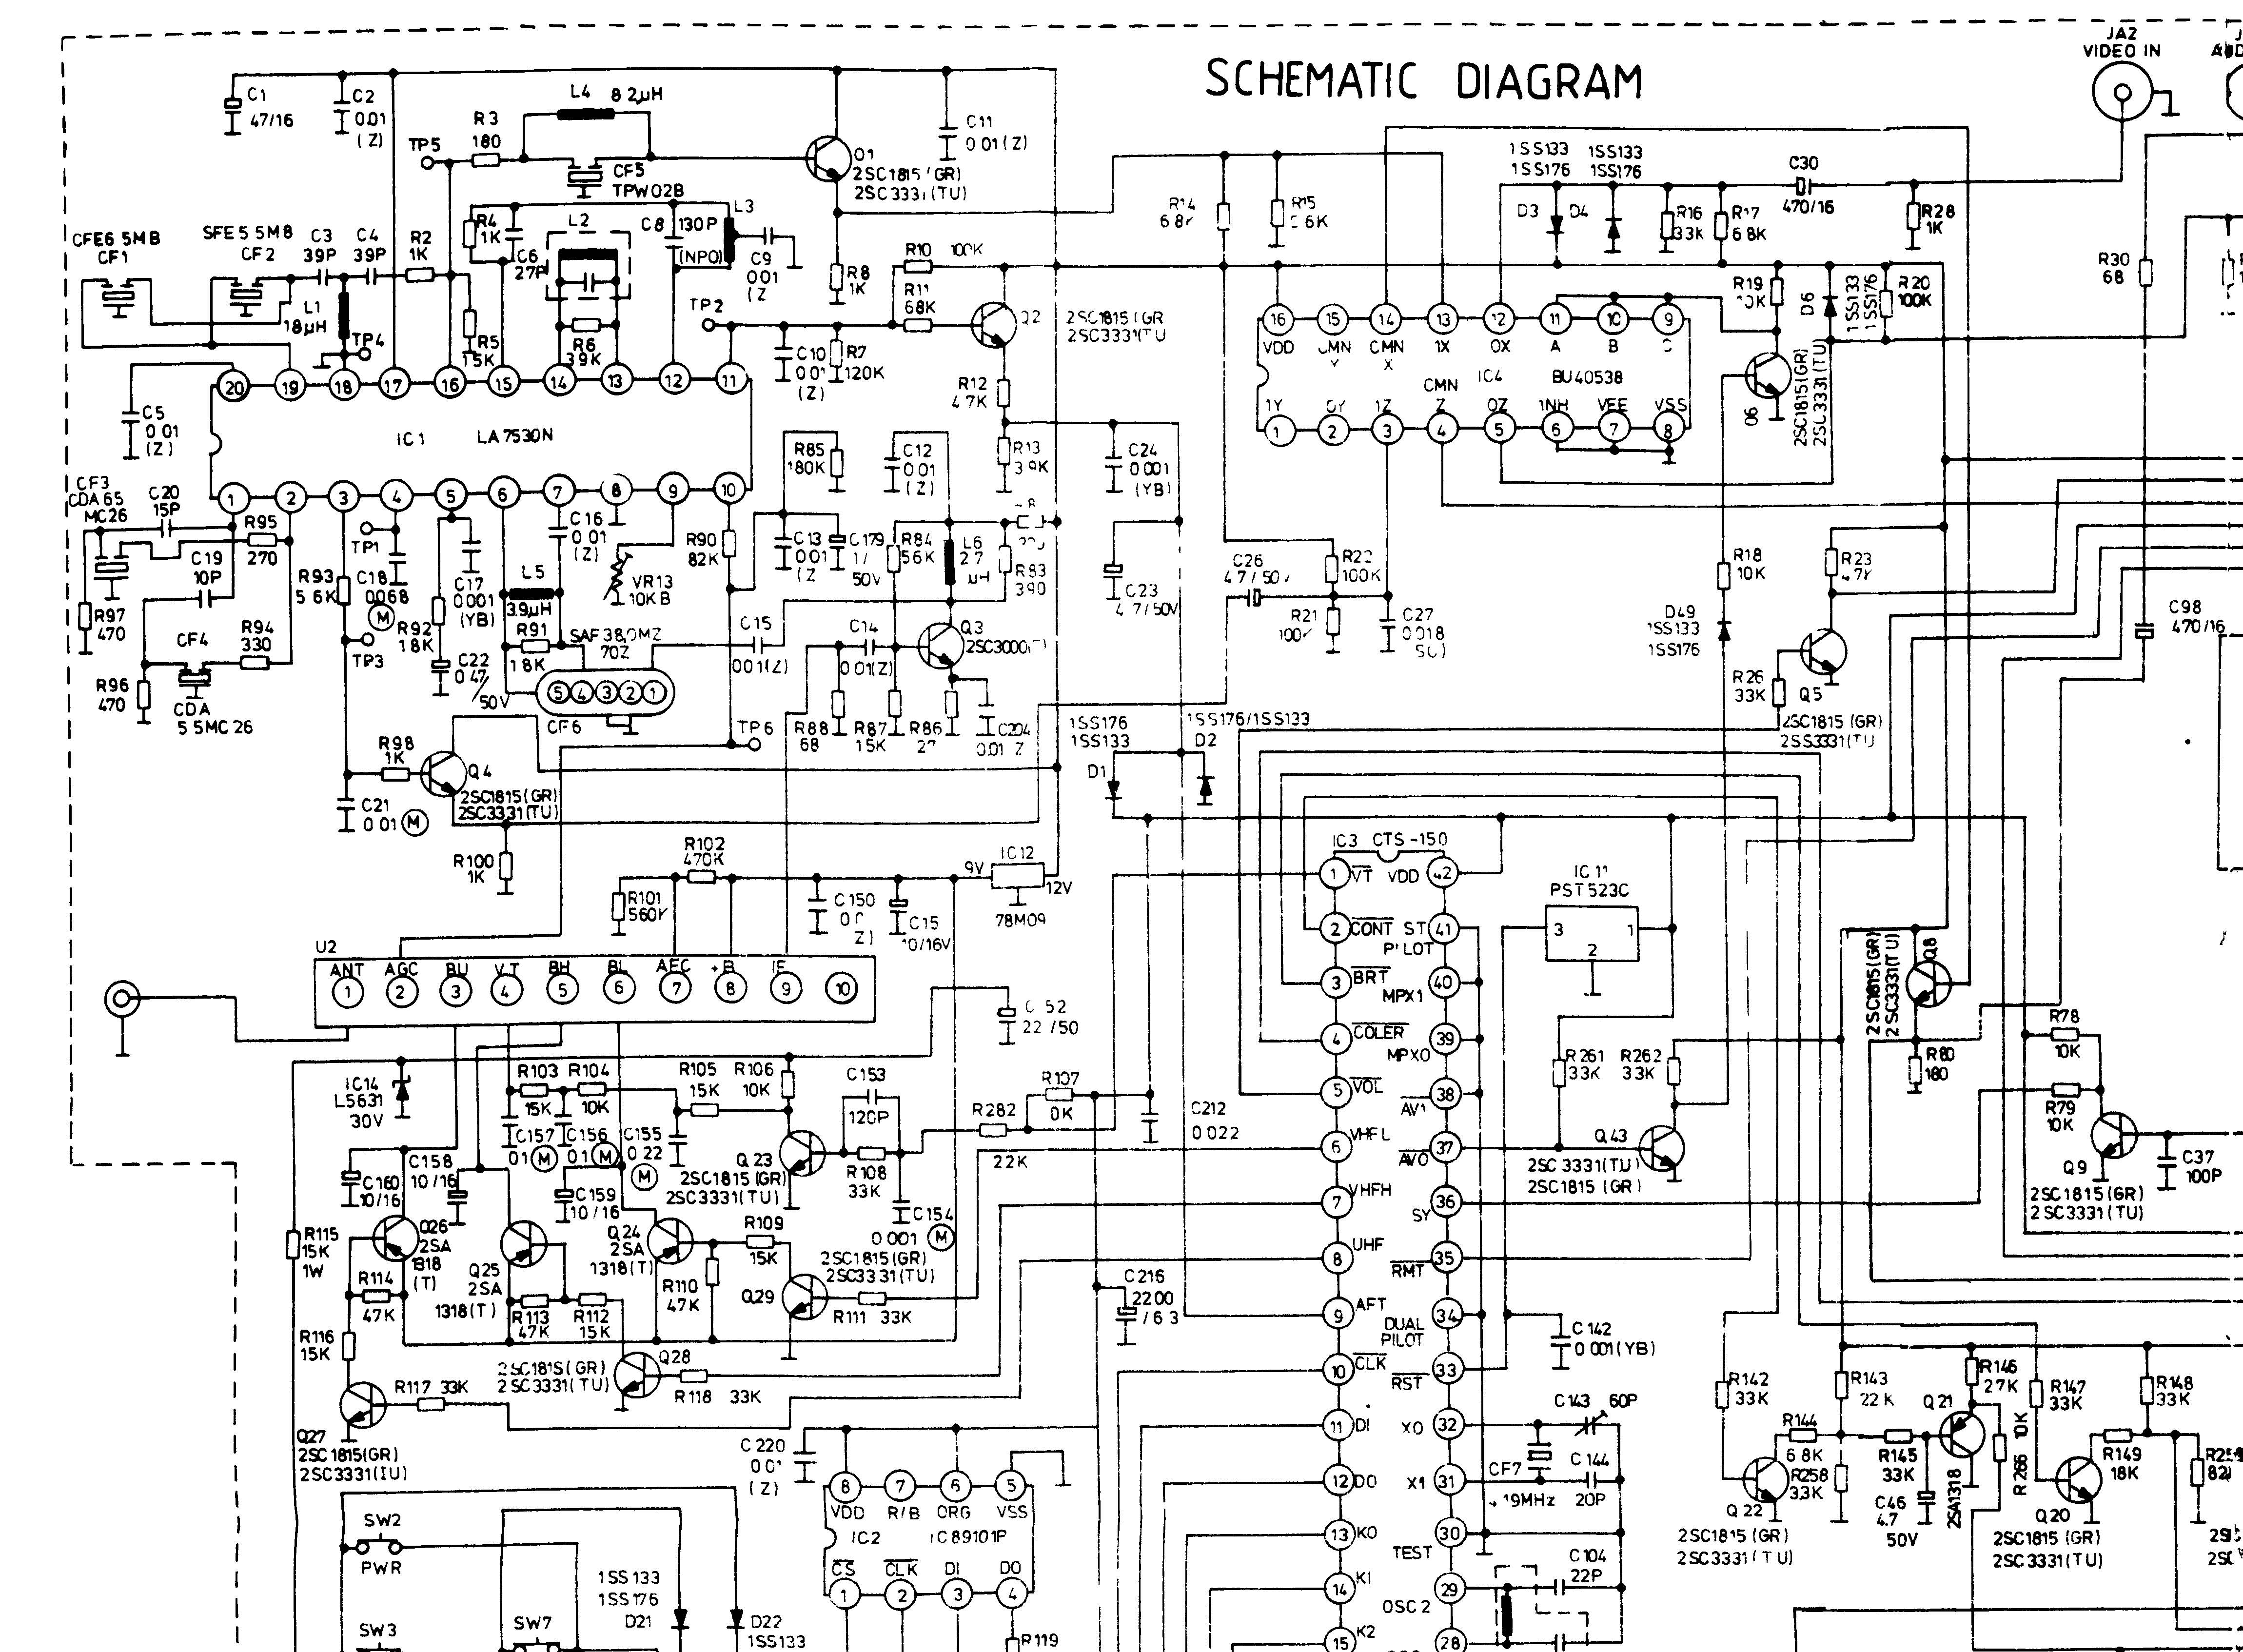 Samsung Lcd Tv Schematic Diagram Free Download Wiring